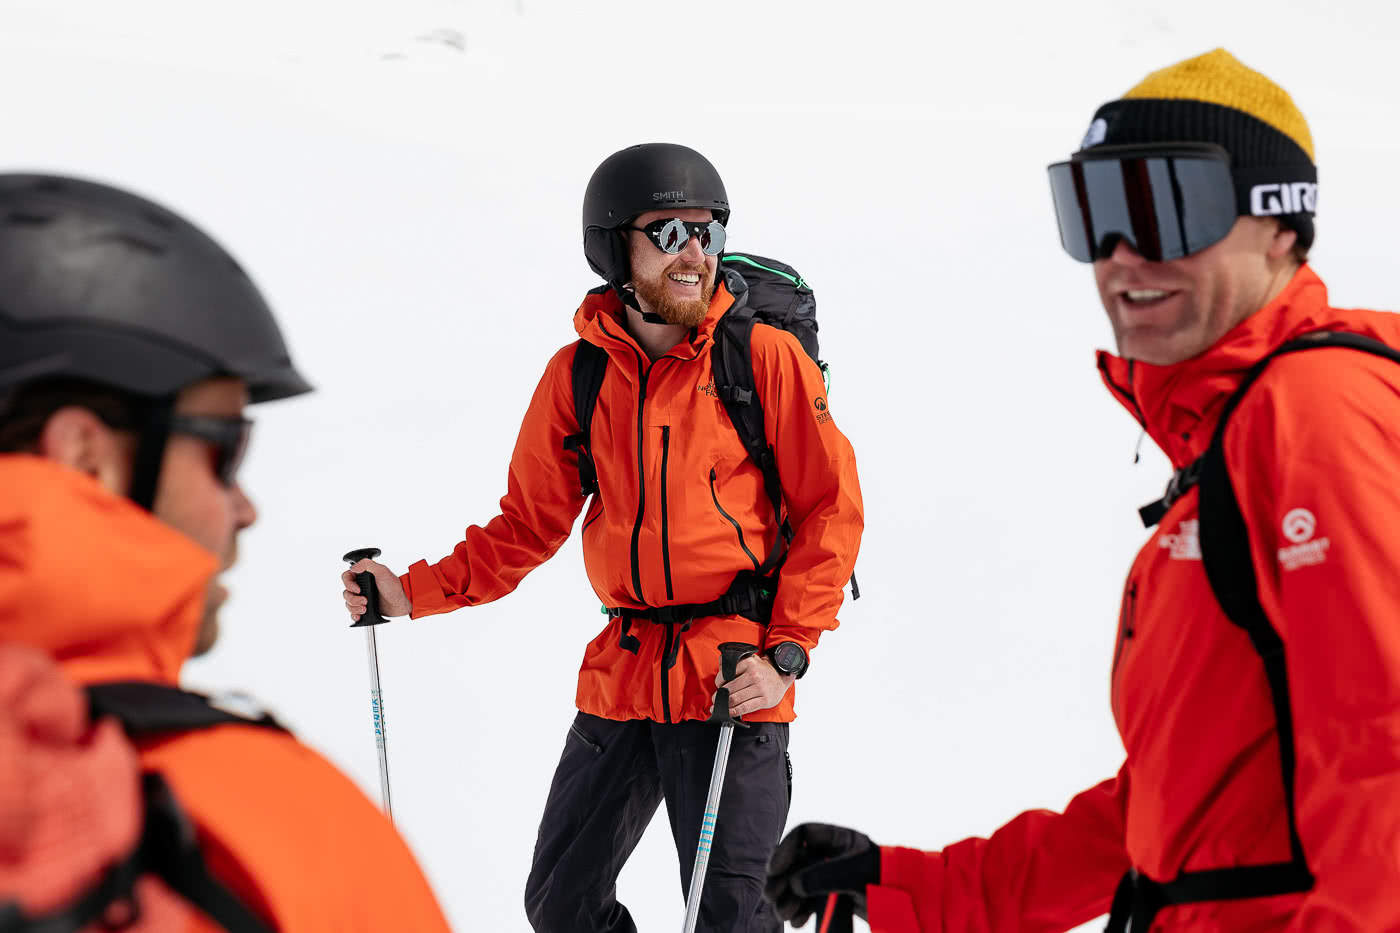 Just How Revolutionary Is FUTURELIGHT Waterproof Breathable Gear? We Tested It Out In NZ, photo by Mark Clinton, the Remarkables, The North Face, New Zealand, skiing